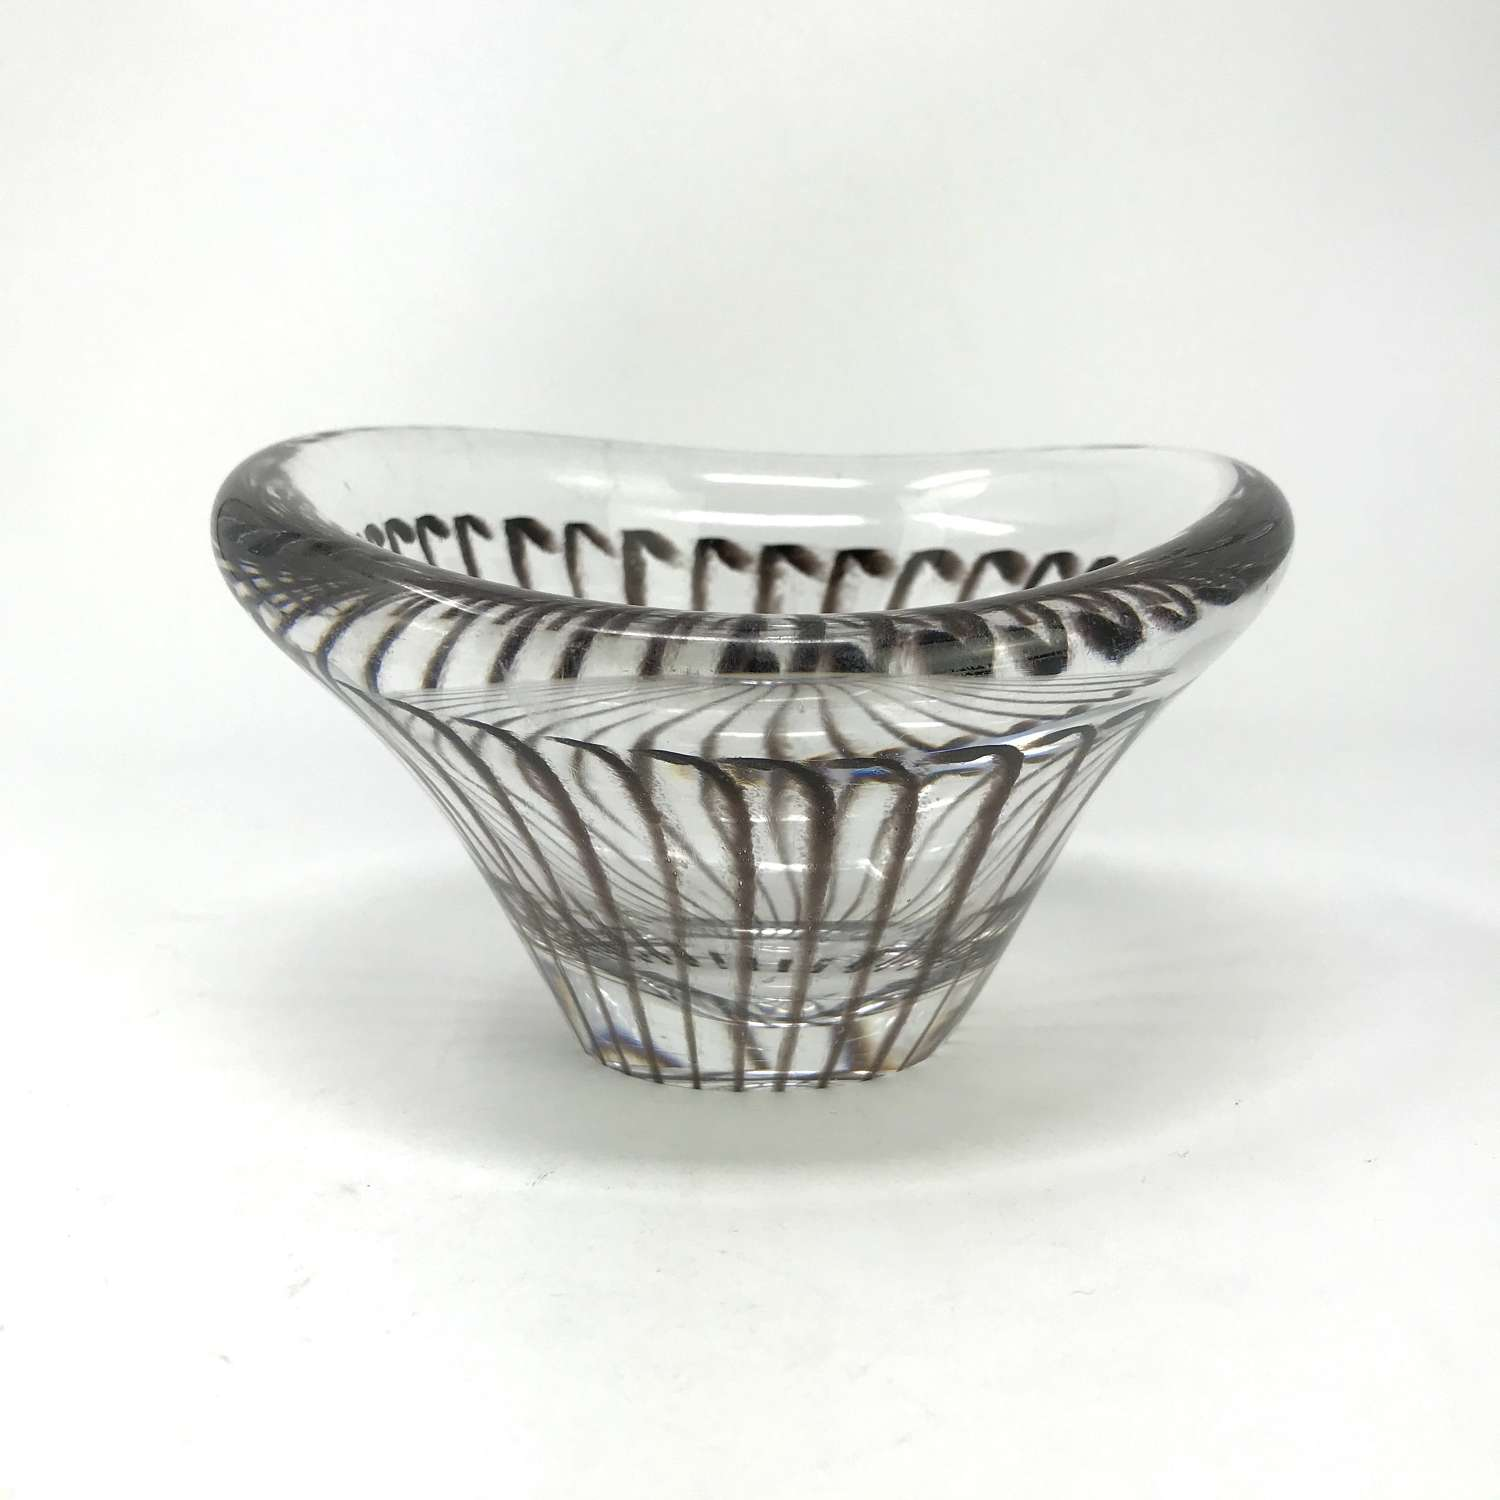 Vicke Lindstrand Bowl With Internal Pattern, Kosta, Sweden 1955-56